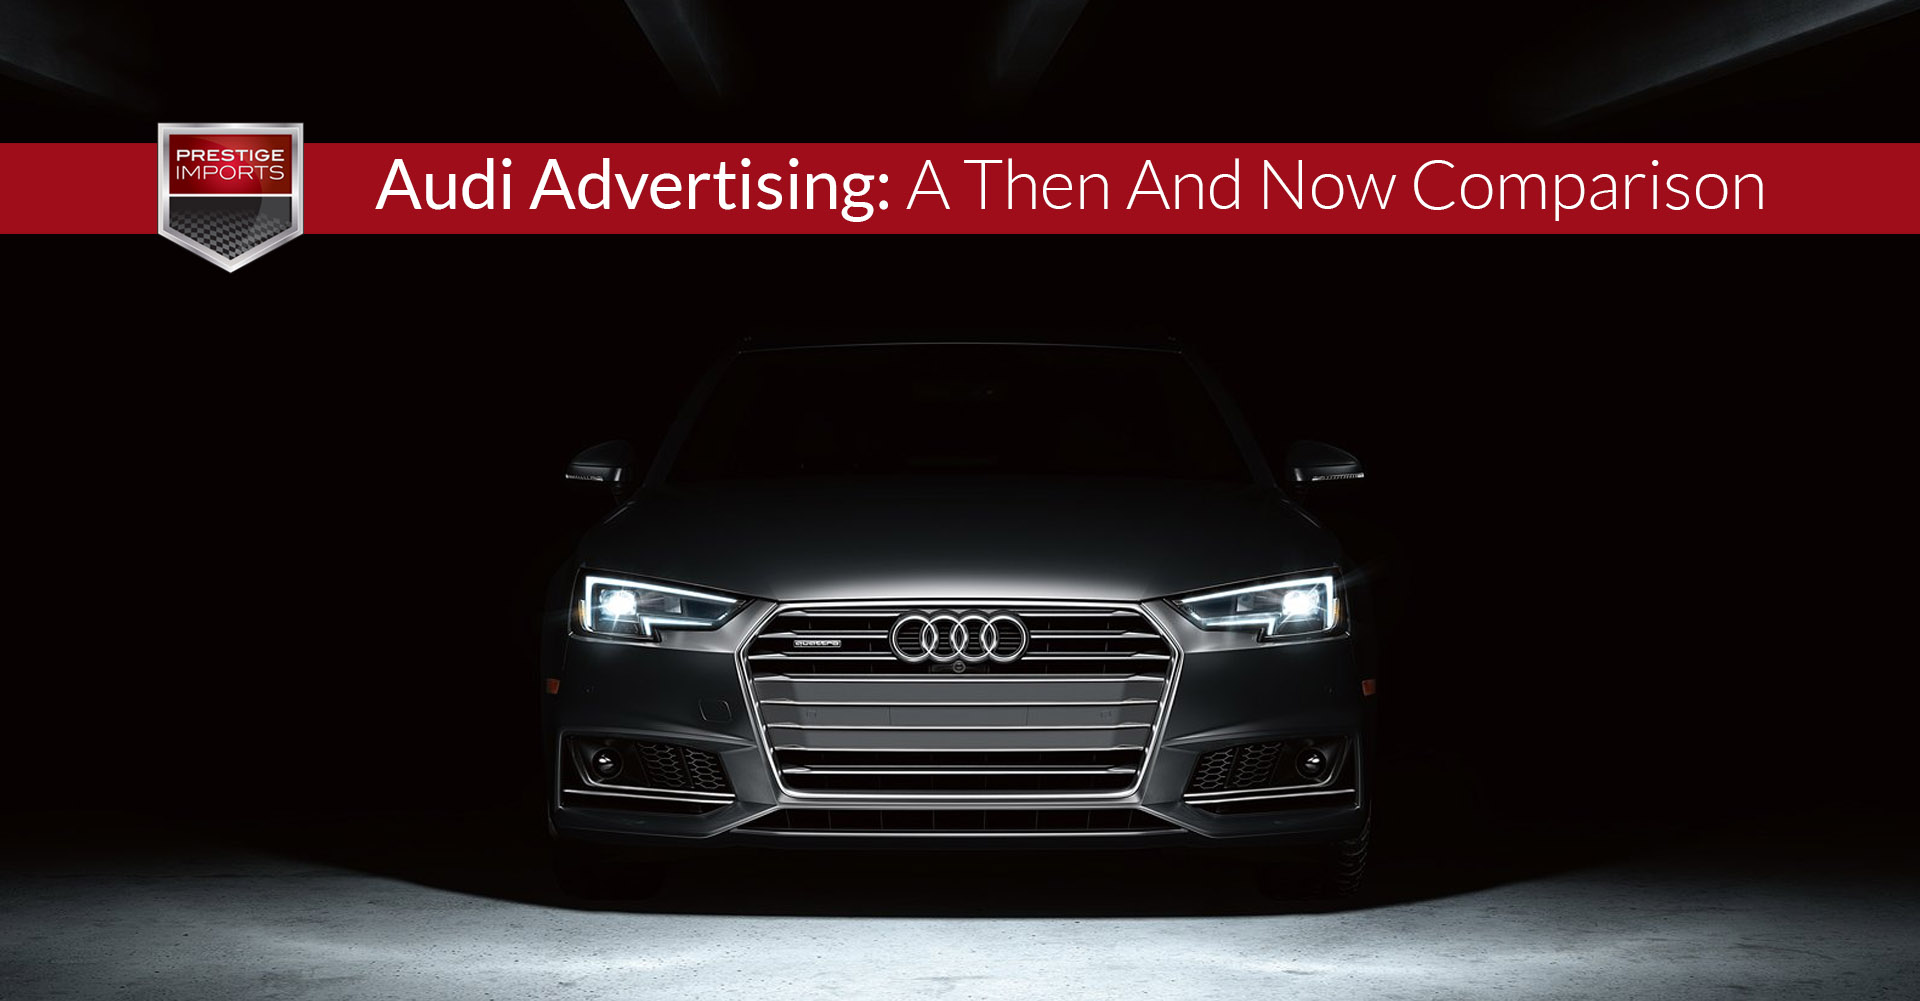 Audi Advertising: A Then And Now Comparison